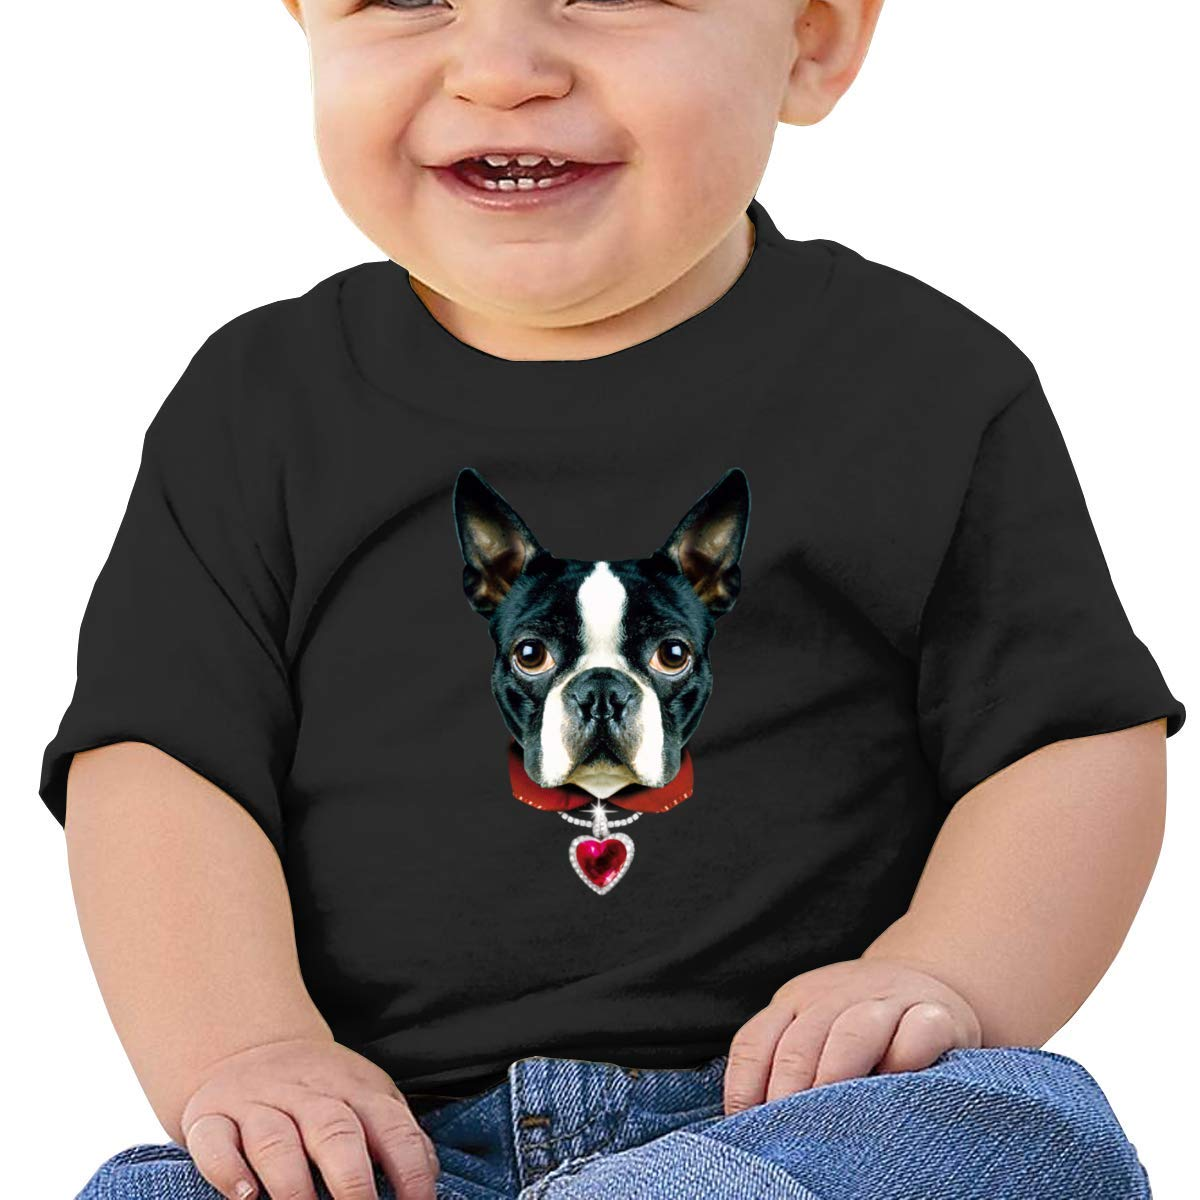 I Love Boston Cute Dog Short Sleeve Tshirts Baby Girls